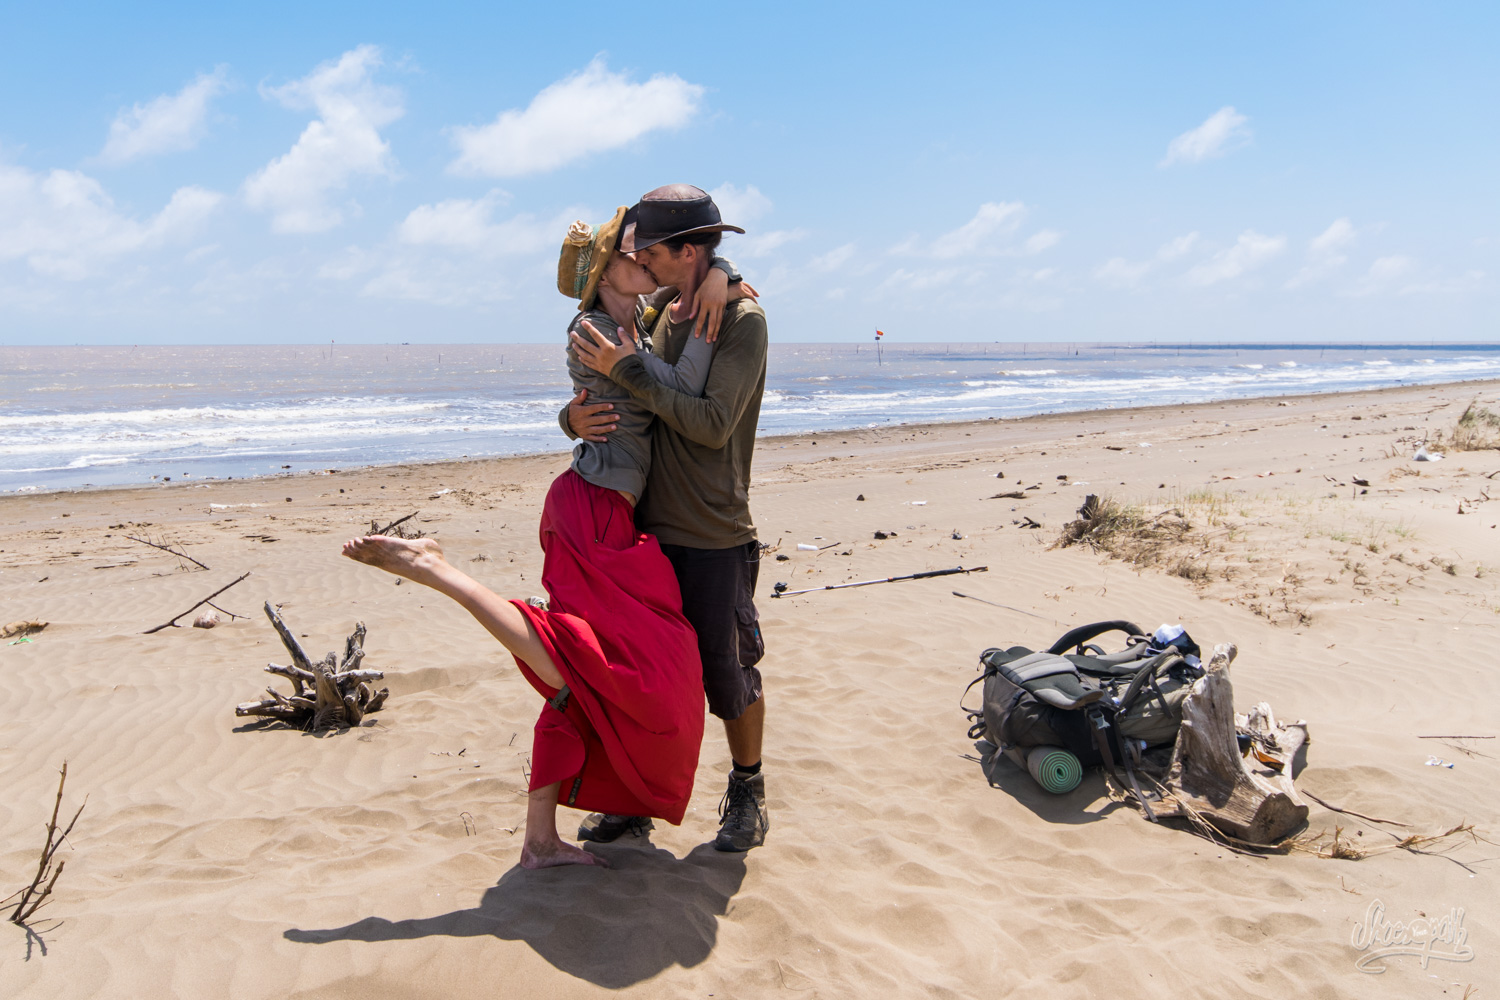 The final kiss ! After 8 months of travels on foot along the Mekong river, love is still there !